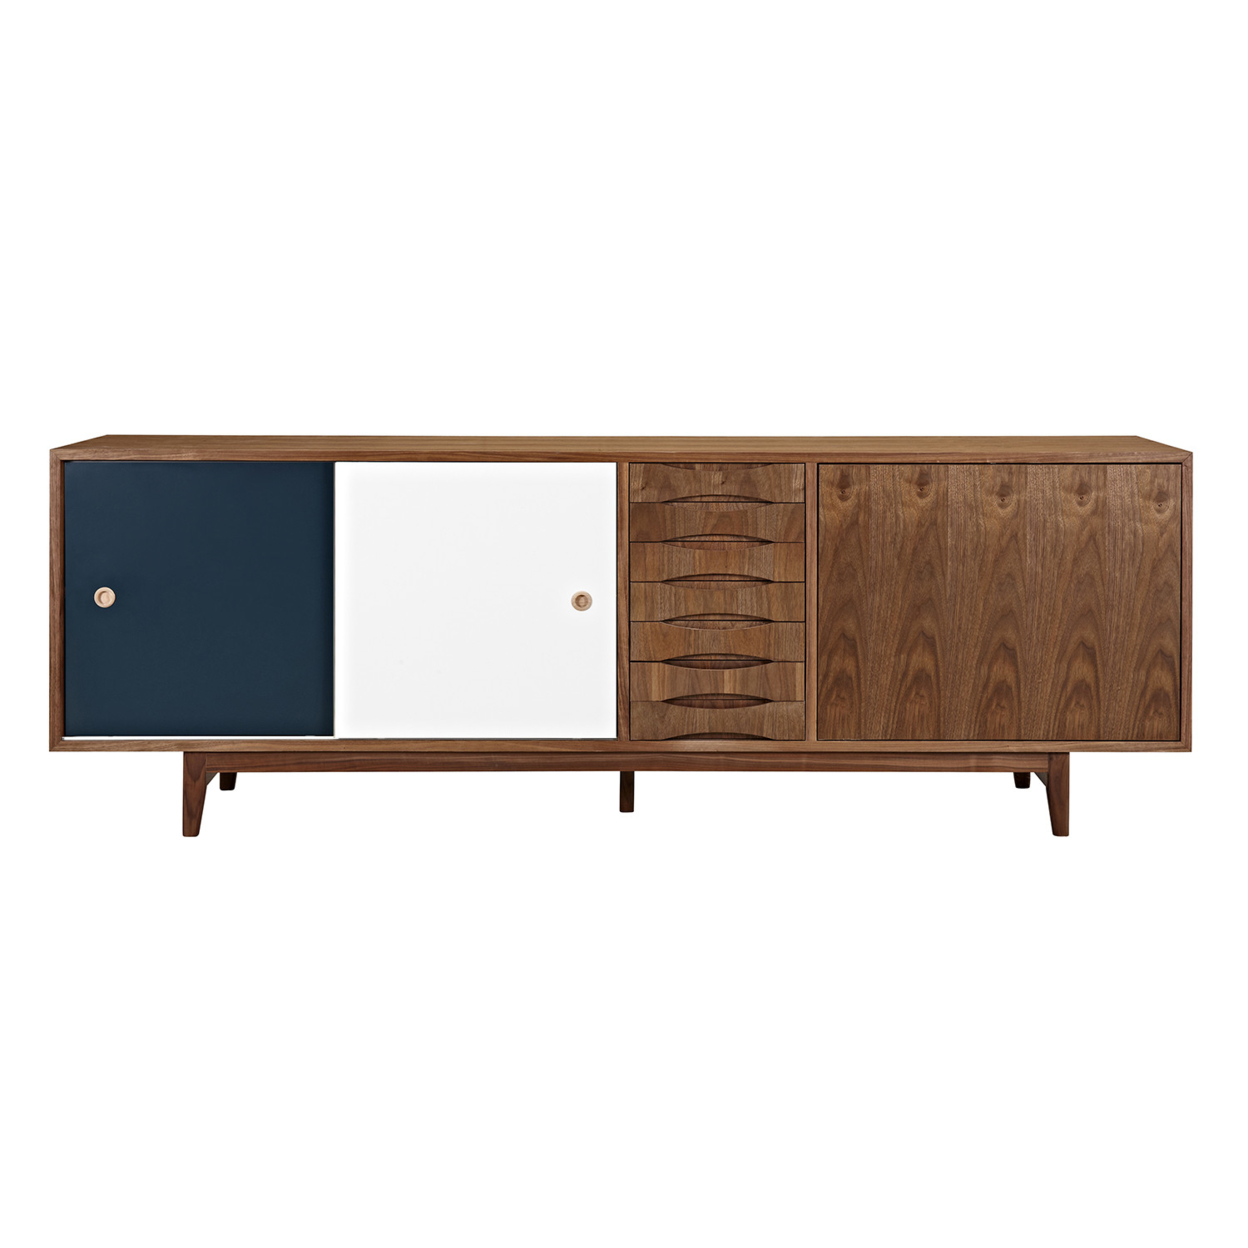 Teal and White Alma Sideboard- Walnut